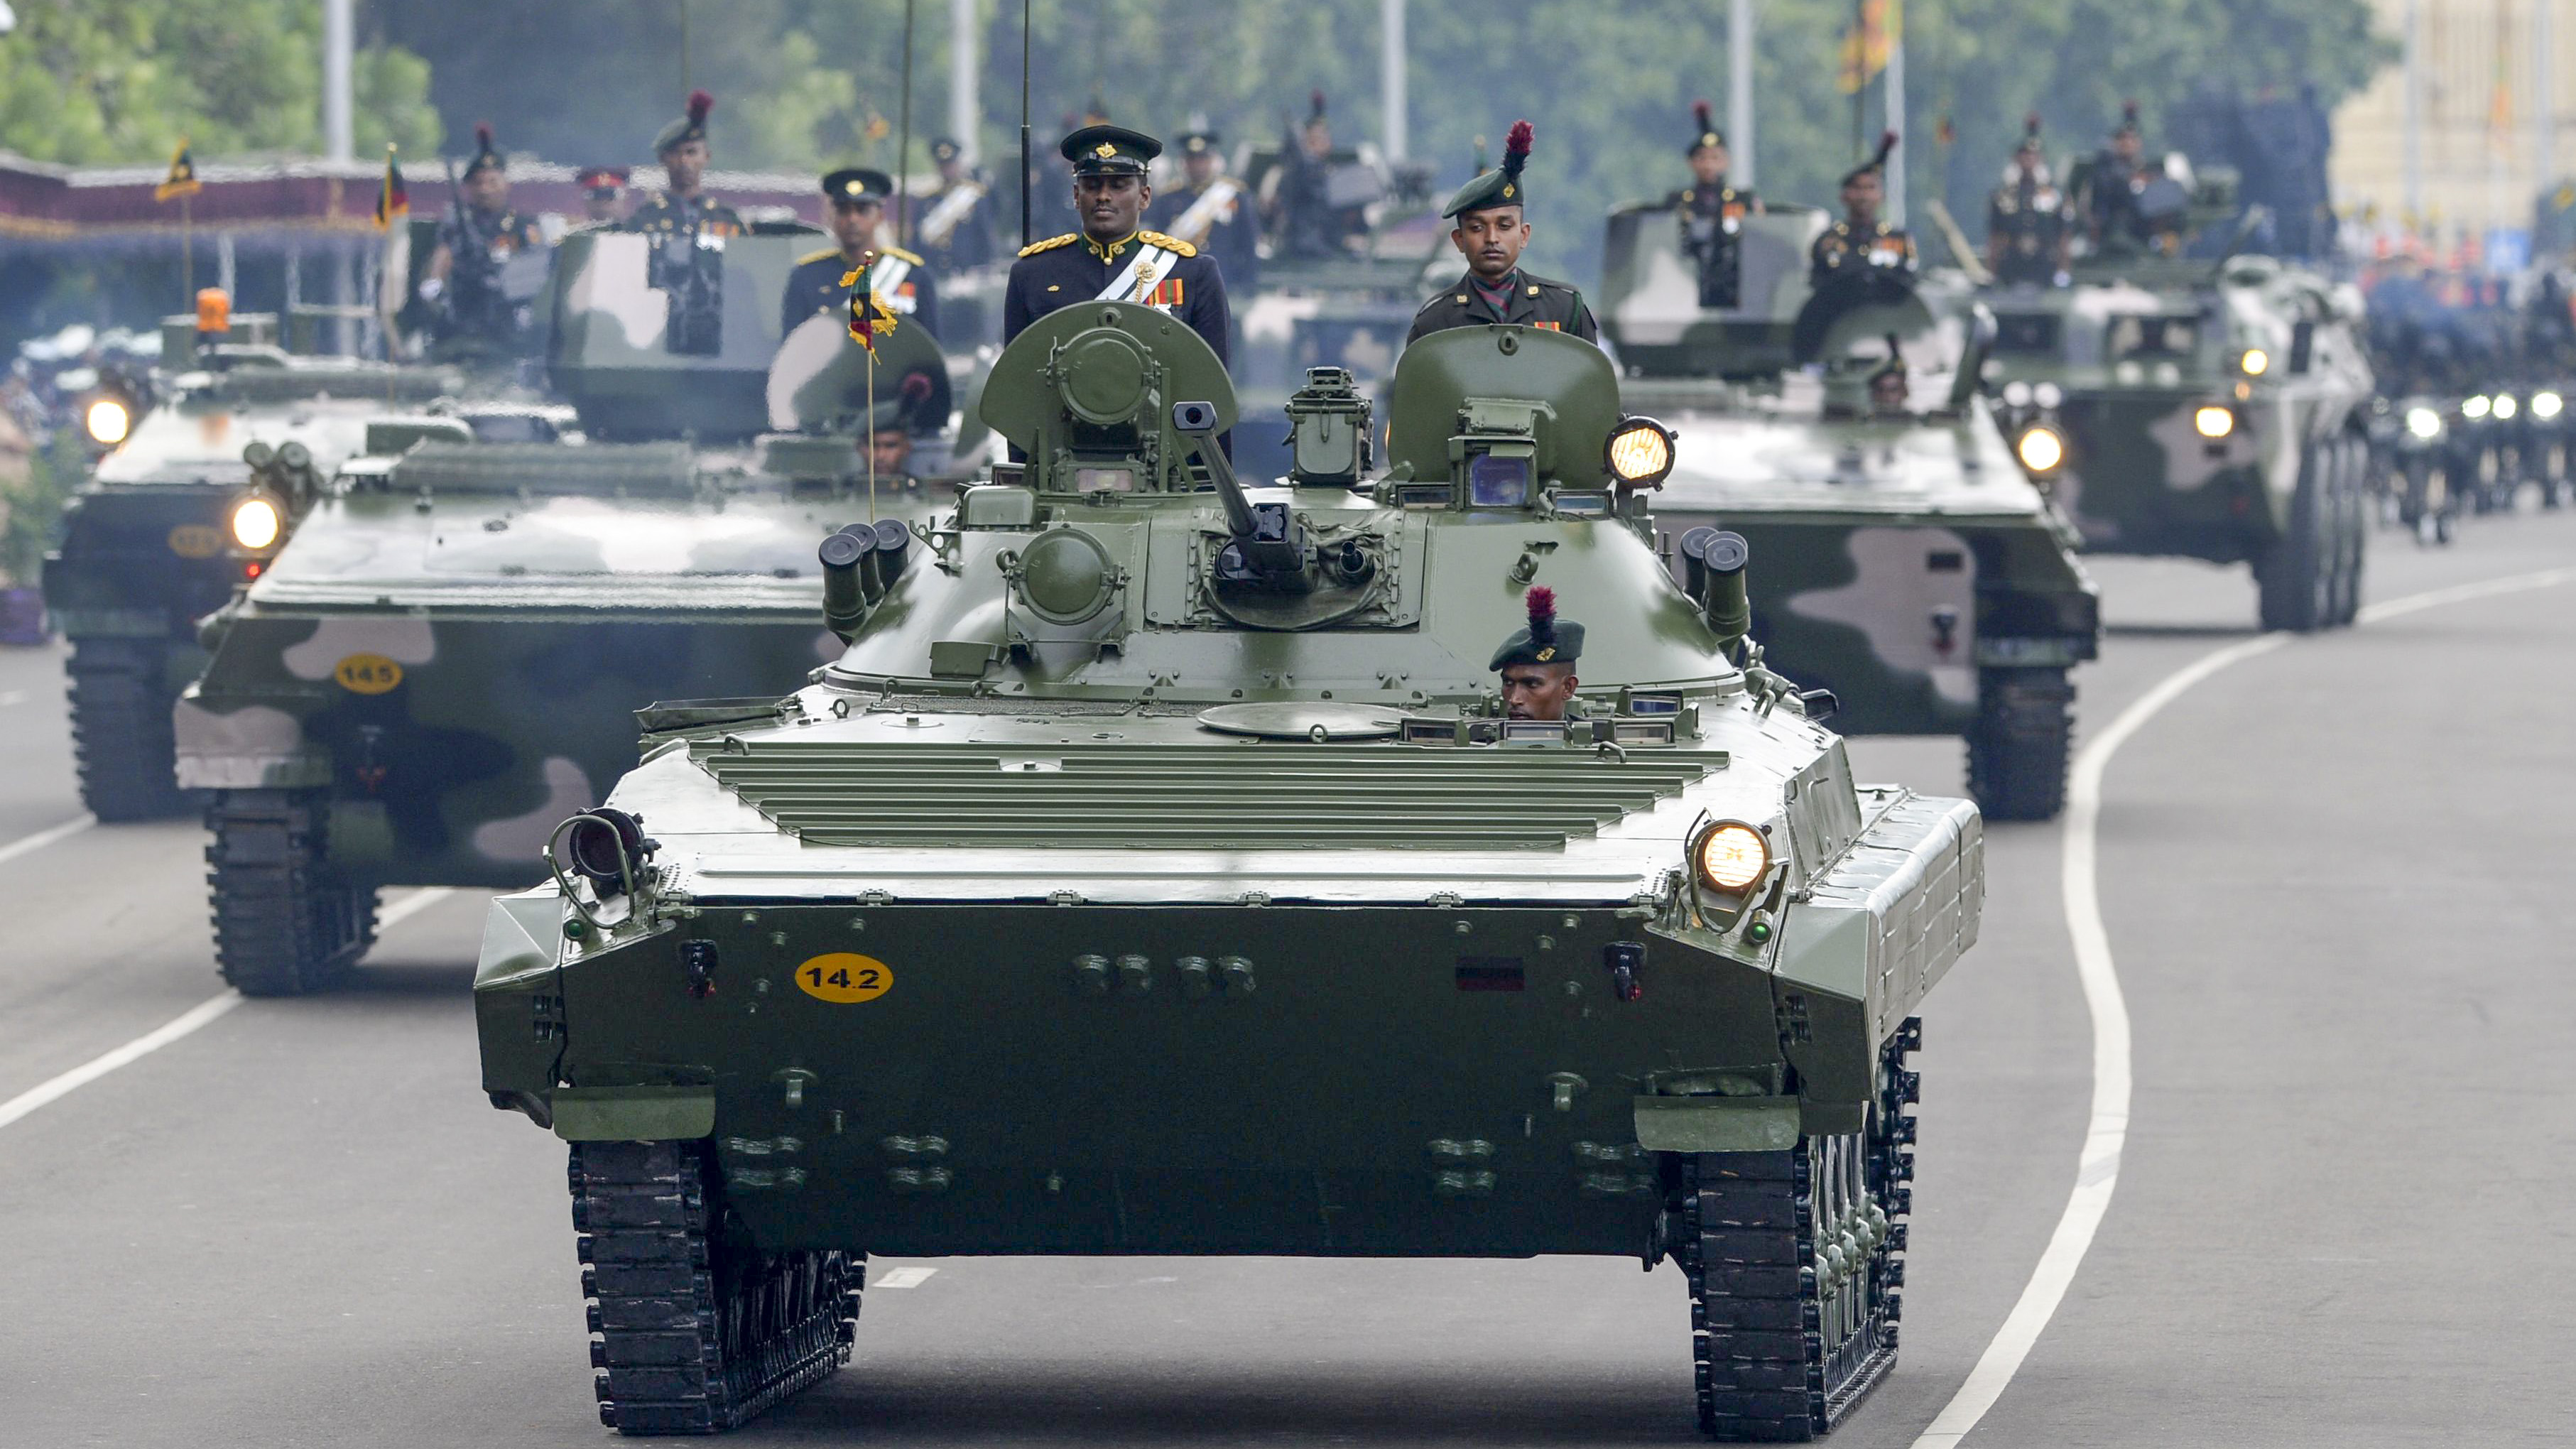 Sri Lankan Army tanks parade during the island's 71st Independence Day celebrations in Colombo on February 4, 2019. - Sri Lanka is marking the 71st anniversary of independence from Britain on February 4. (LAKRUWAN WANNIARACHCHI/AFP/Getty Images)